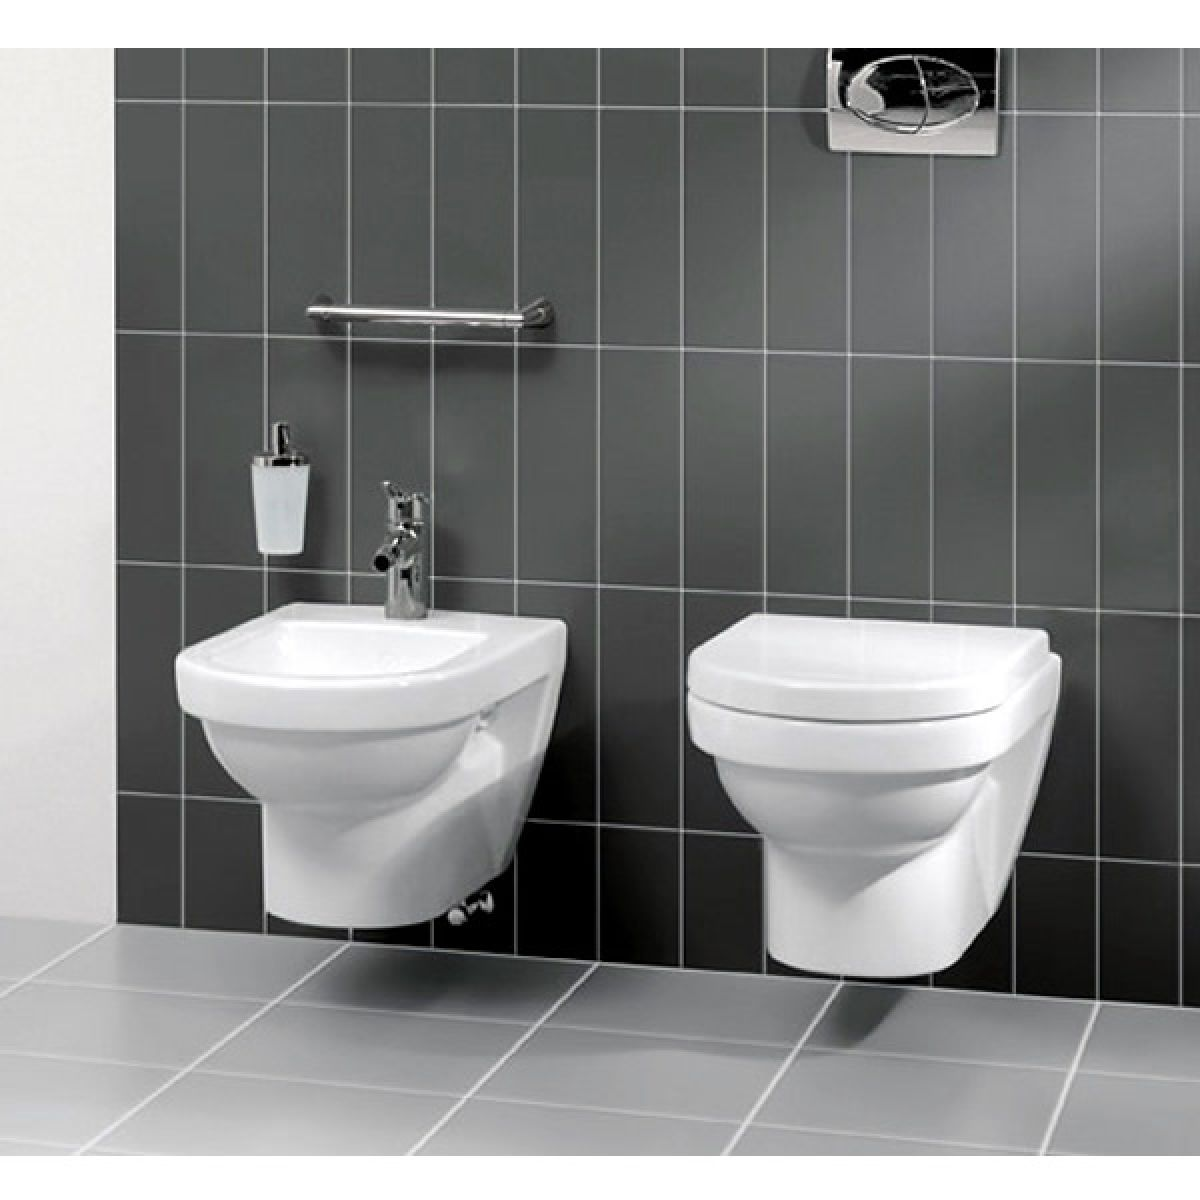 villeroy boch architectura washdown toilet uk bathrooms. Black Bedroom Furniture Sets. Home Design Ideas